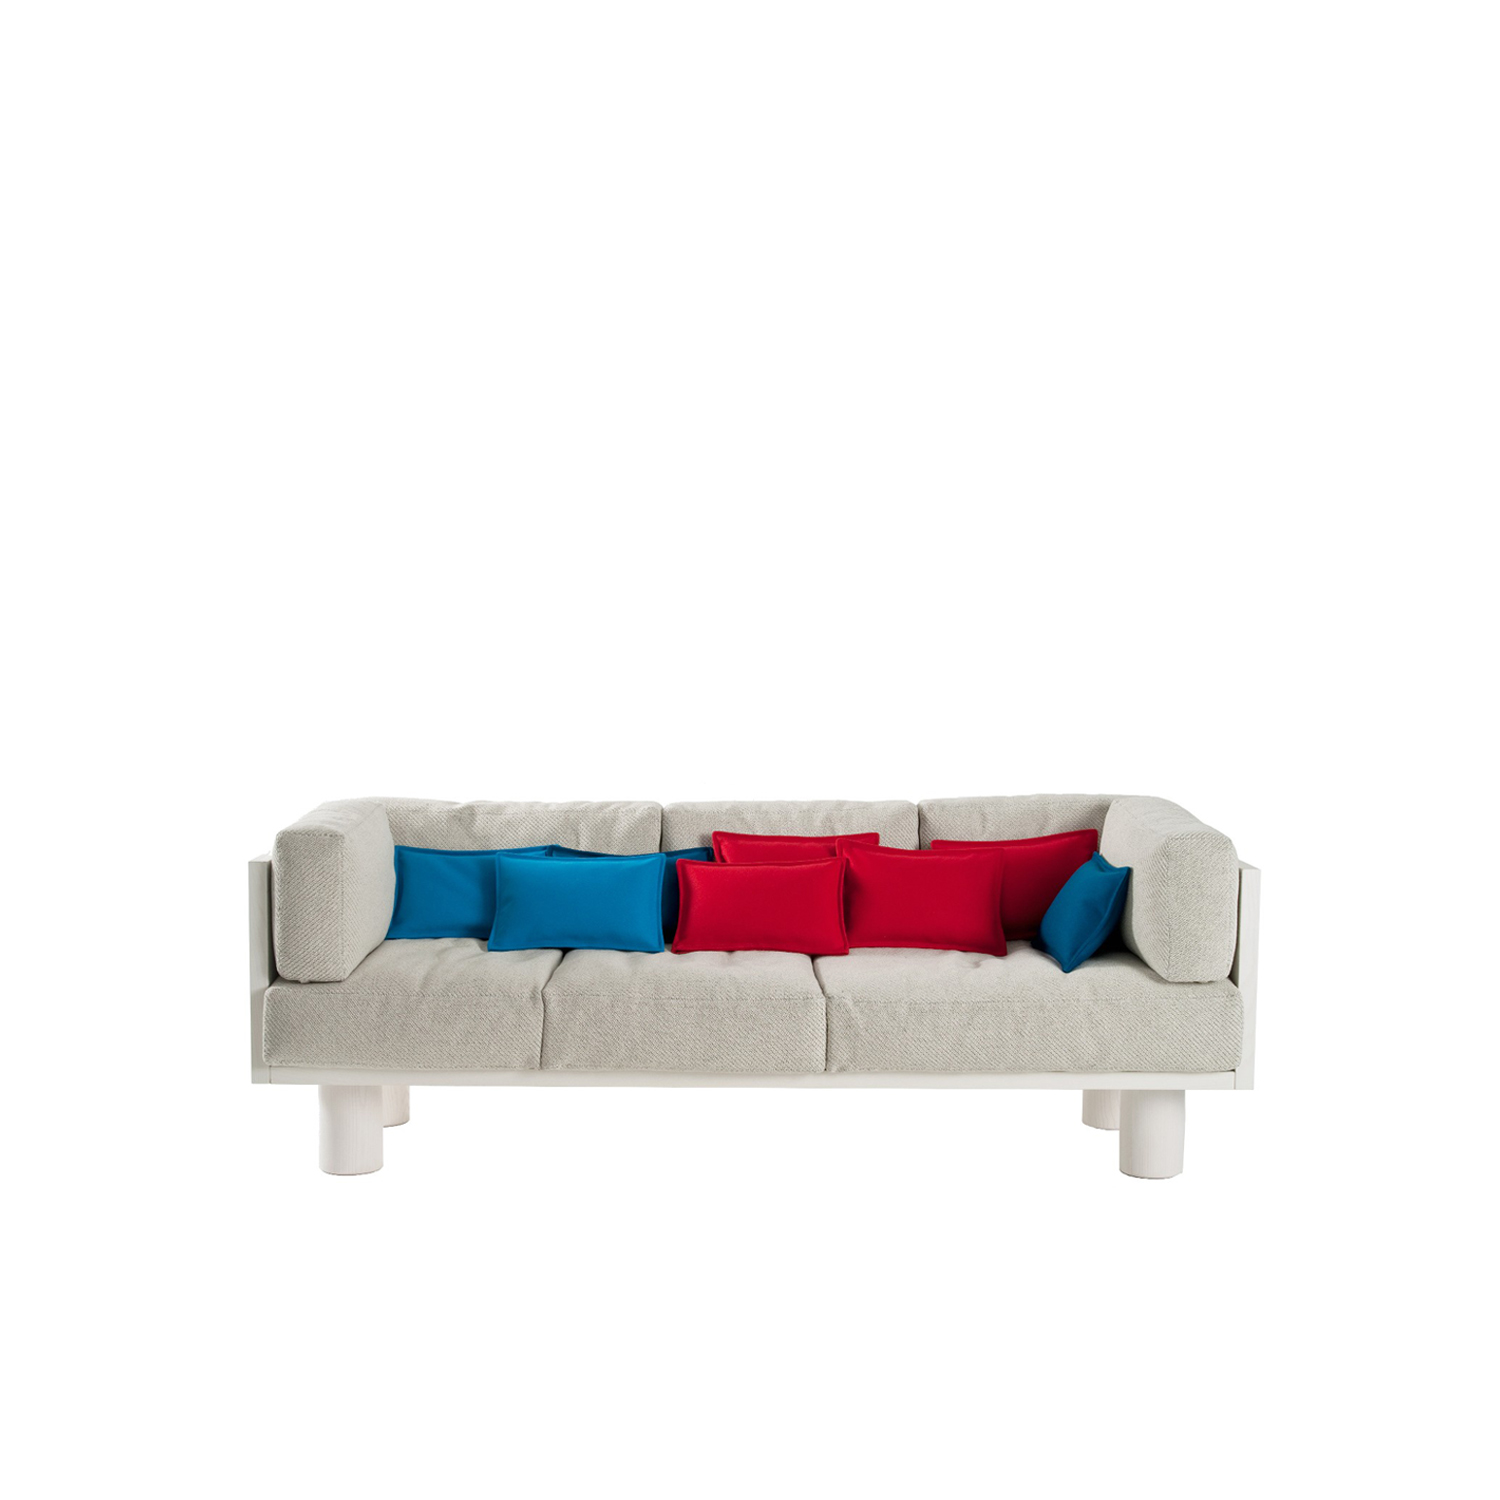 Ottoman Sofa - Ottoman sofa, clearly inspired by the Ottoman culture, is born from the desire to have a comfortable and informal yet precious seat, to be used in a transversal way.  The wide and fluffy feather cushions are embellished with a refined selection of wool felt, velvet, technical fibers and wool yarns of various thicknesses with underneath contrasting threads to add a touch of preciousness. Robust structure made of wood with tobacco or white stained flamed ash finish. | Matter of Stuff